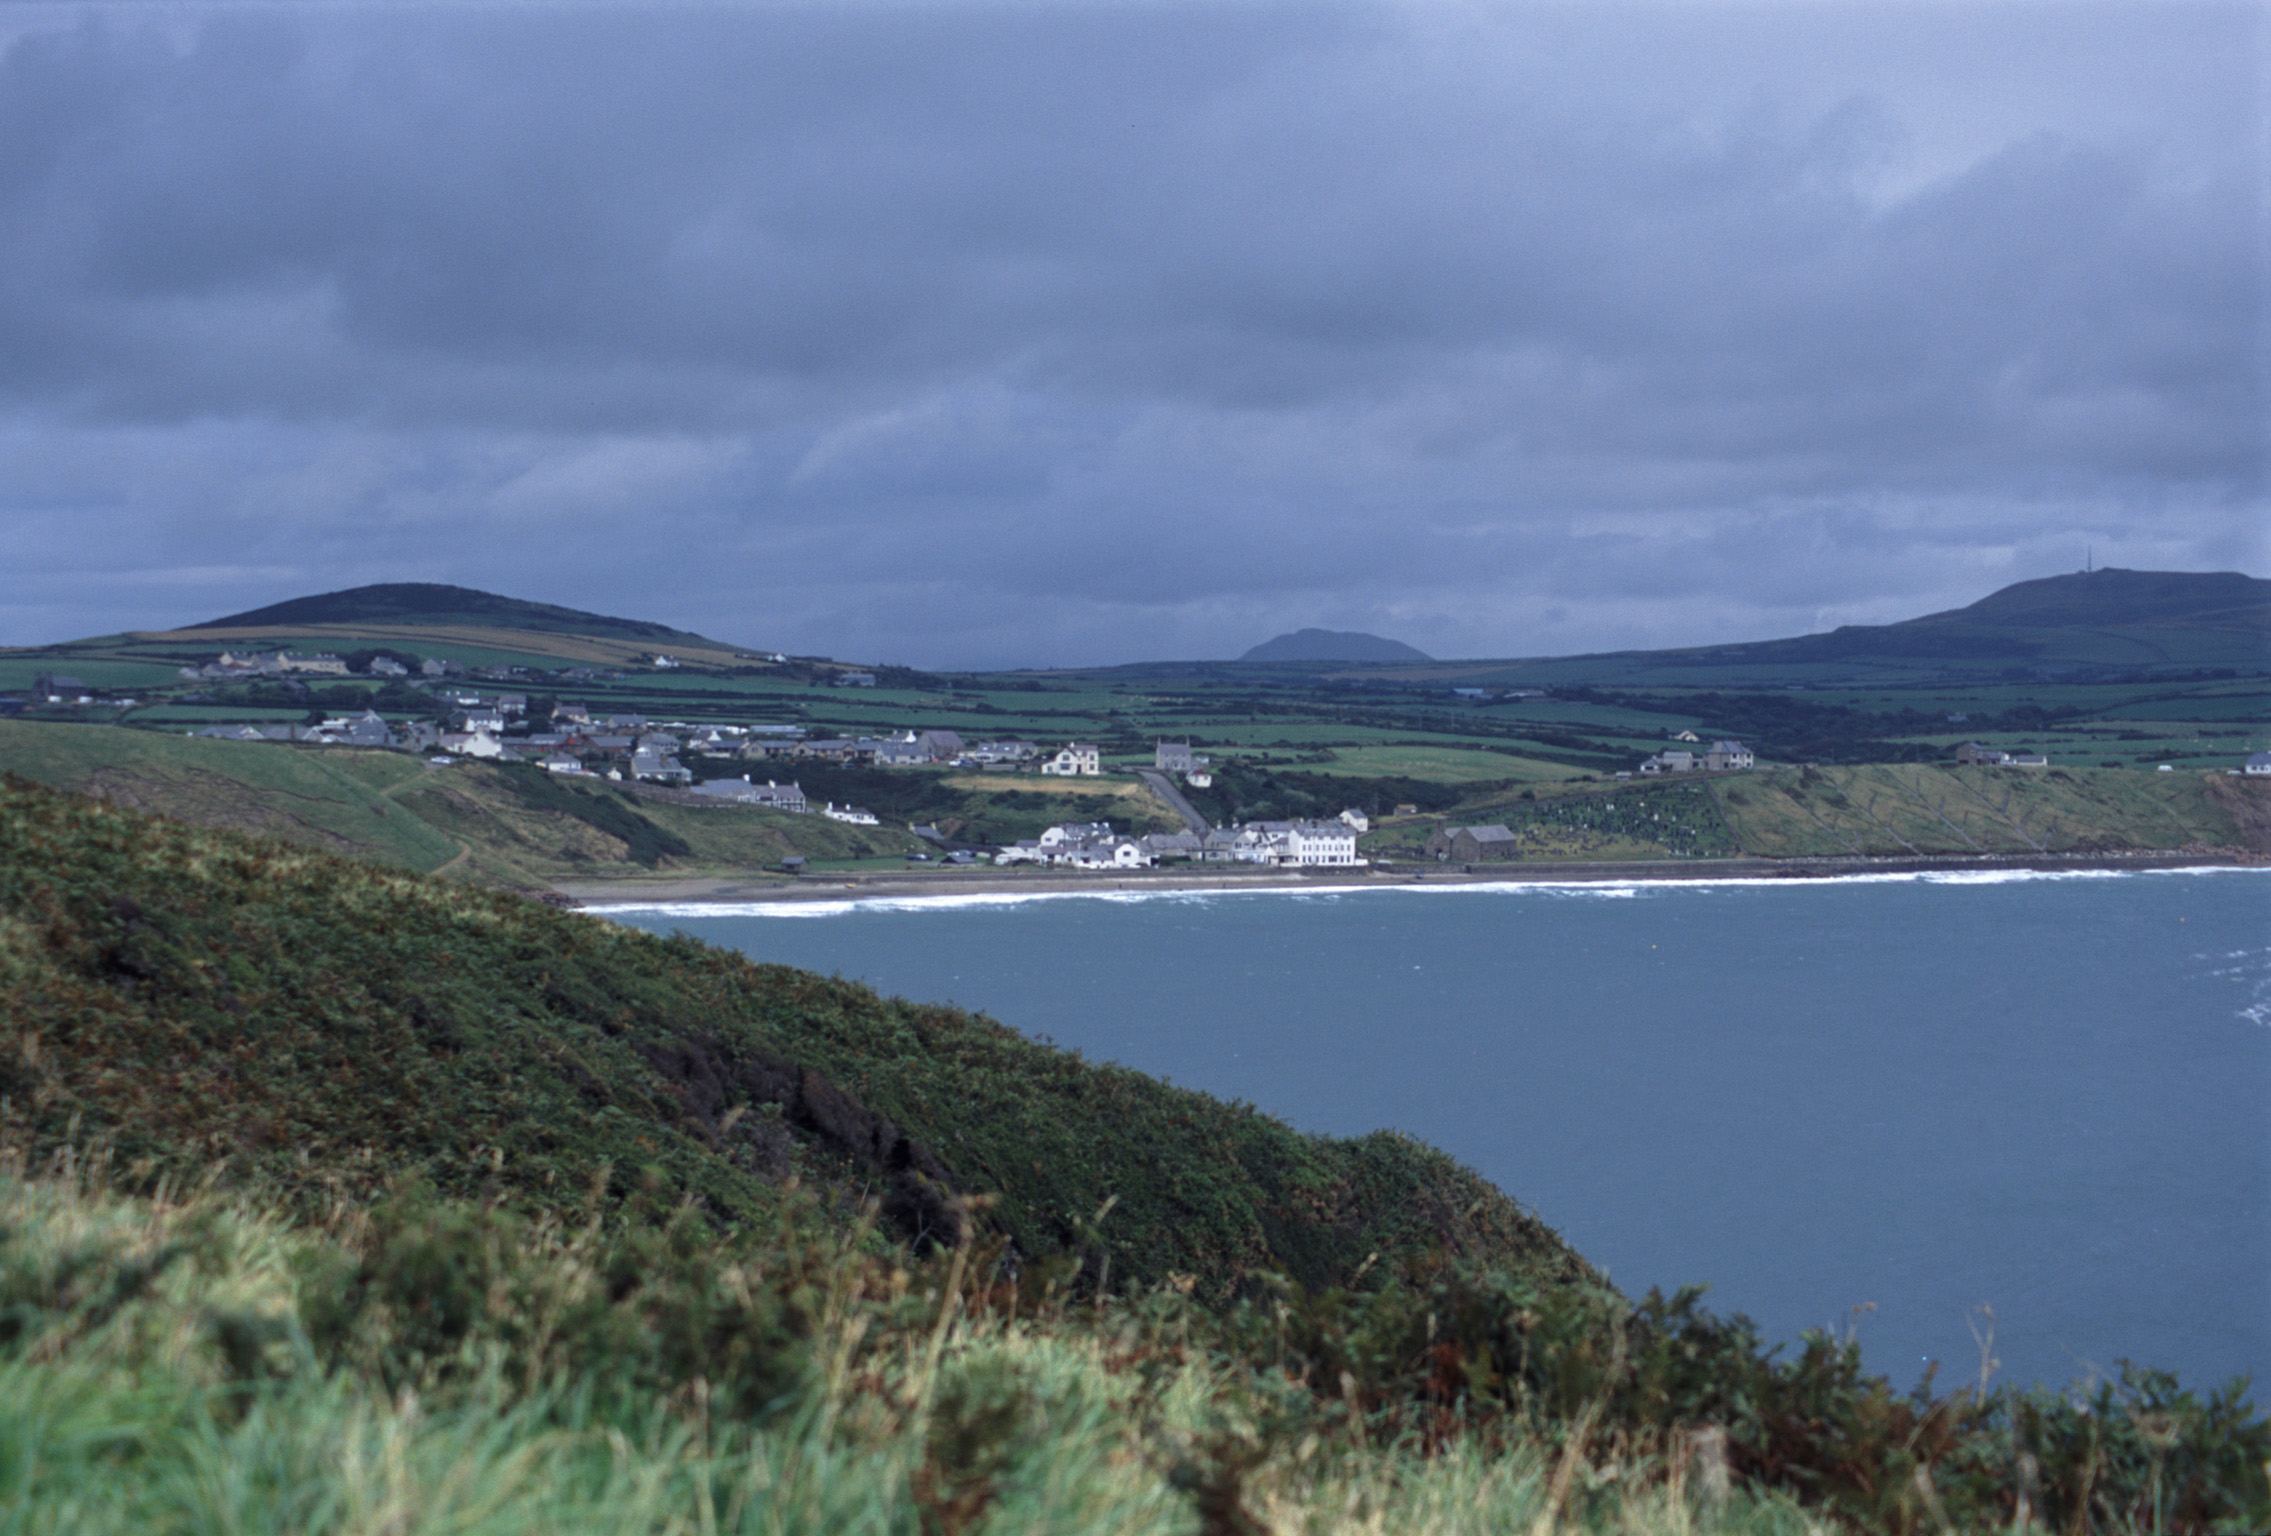 Picturesque village of Aberdaron on the Llyn peninsula in Wales with whitewashed buildings nestled around a sandy beach amidst rolling green hills